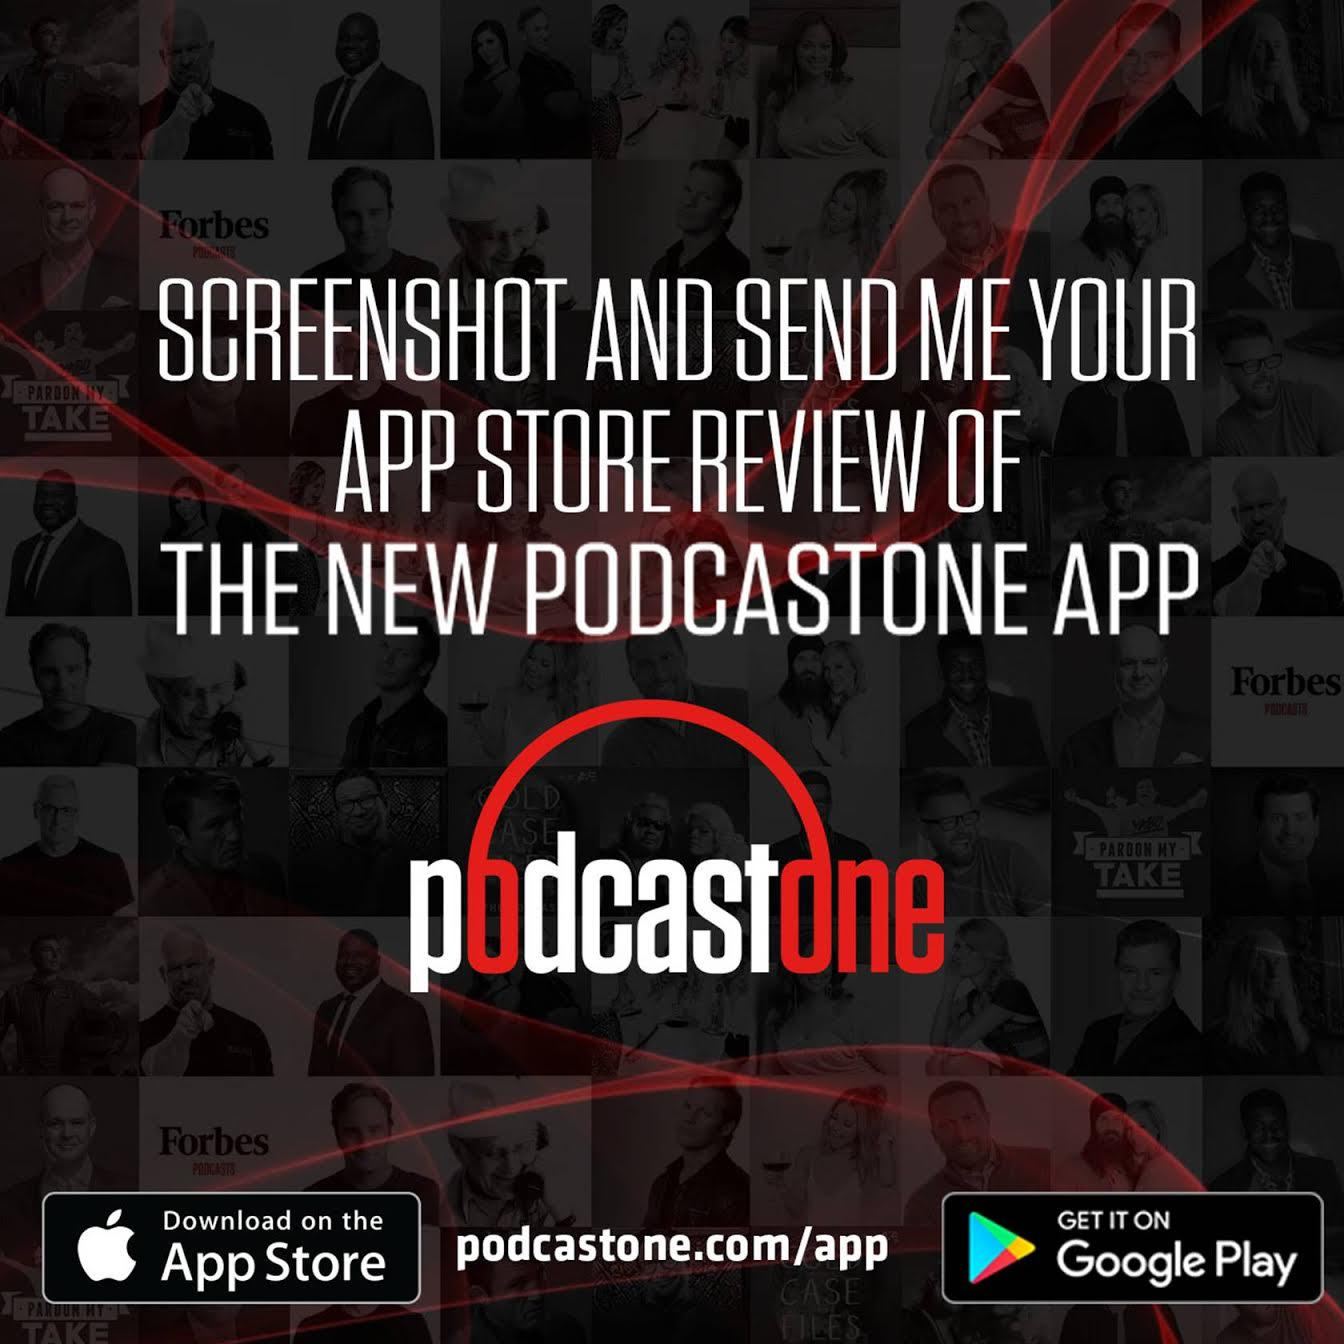 Podcast one app